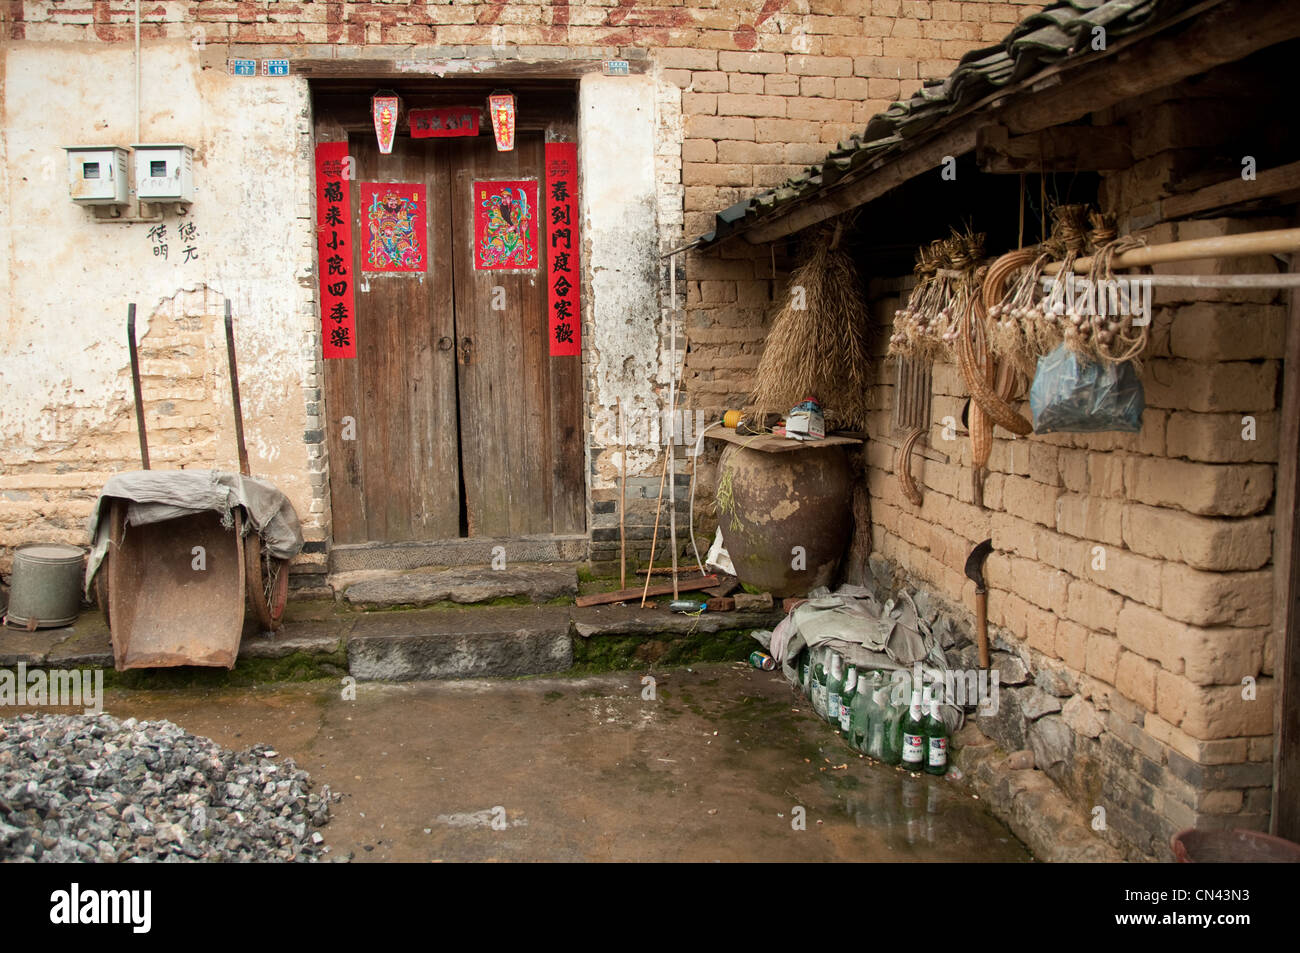 Courtyard of a traditional house, Guilin, Guangxi Province, Southern China Stock Photo